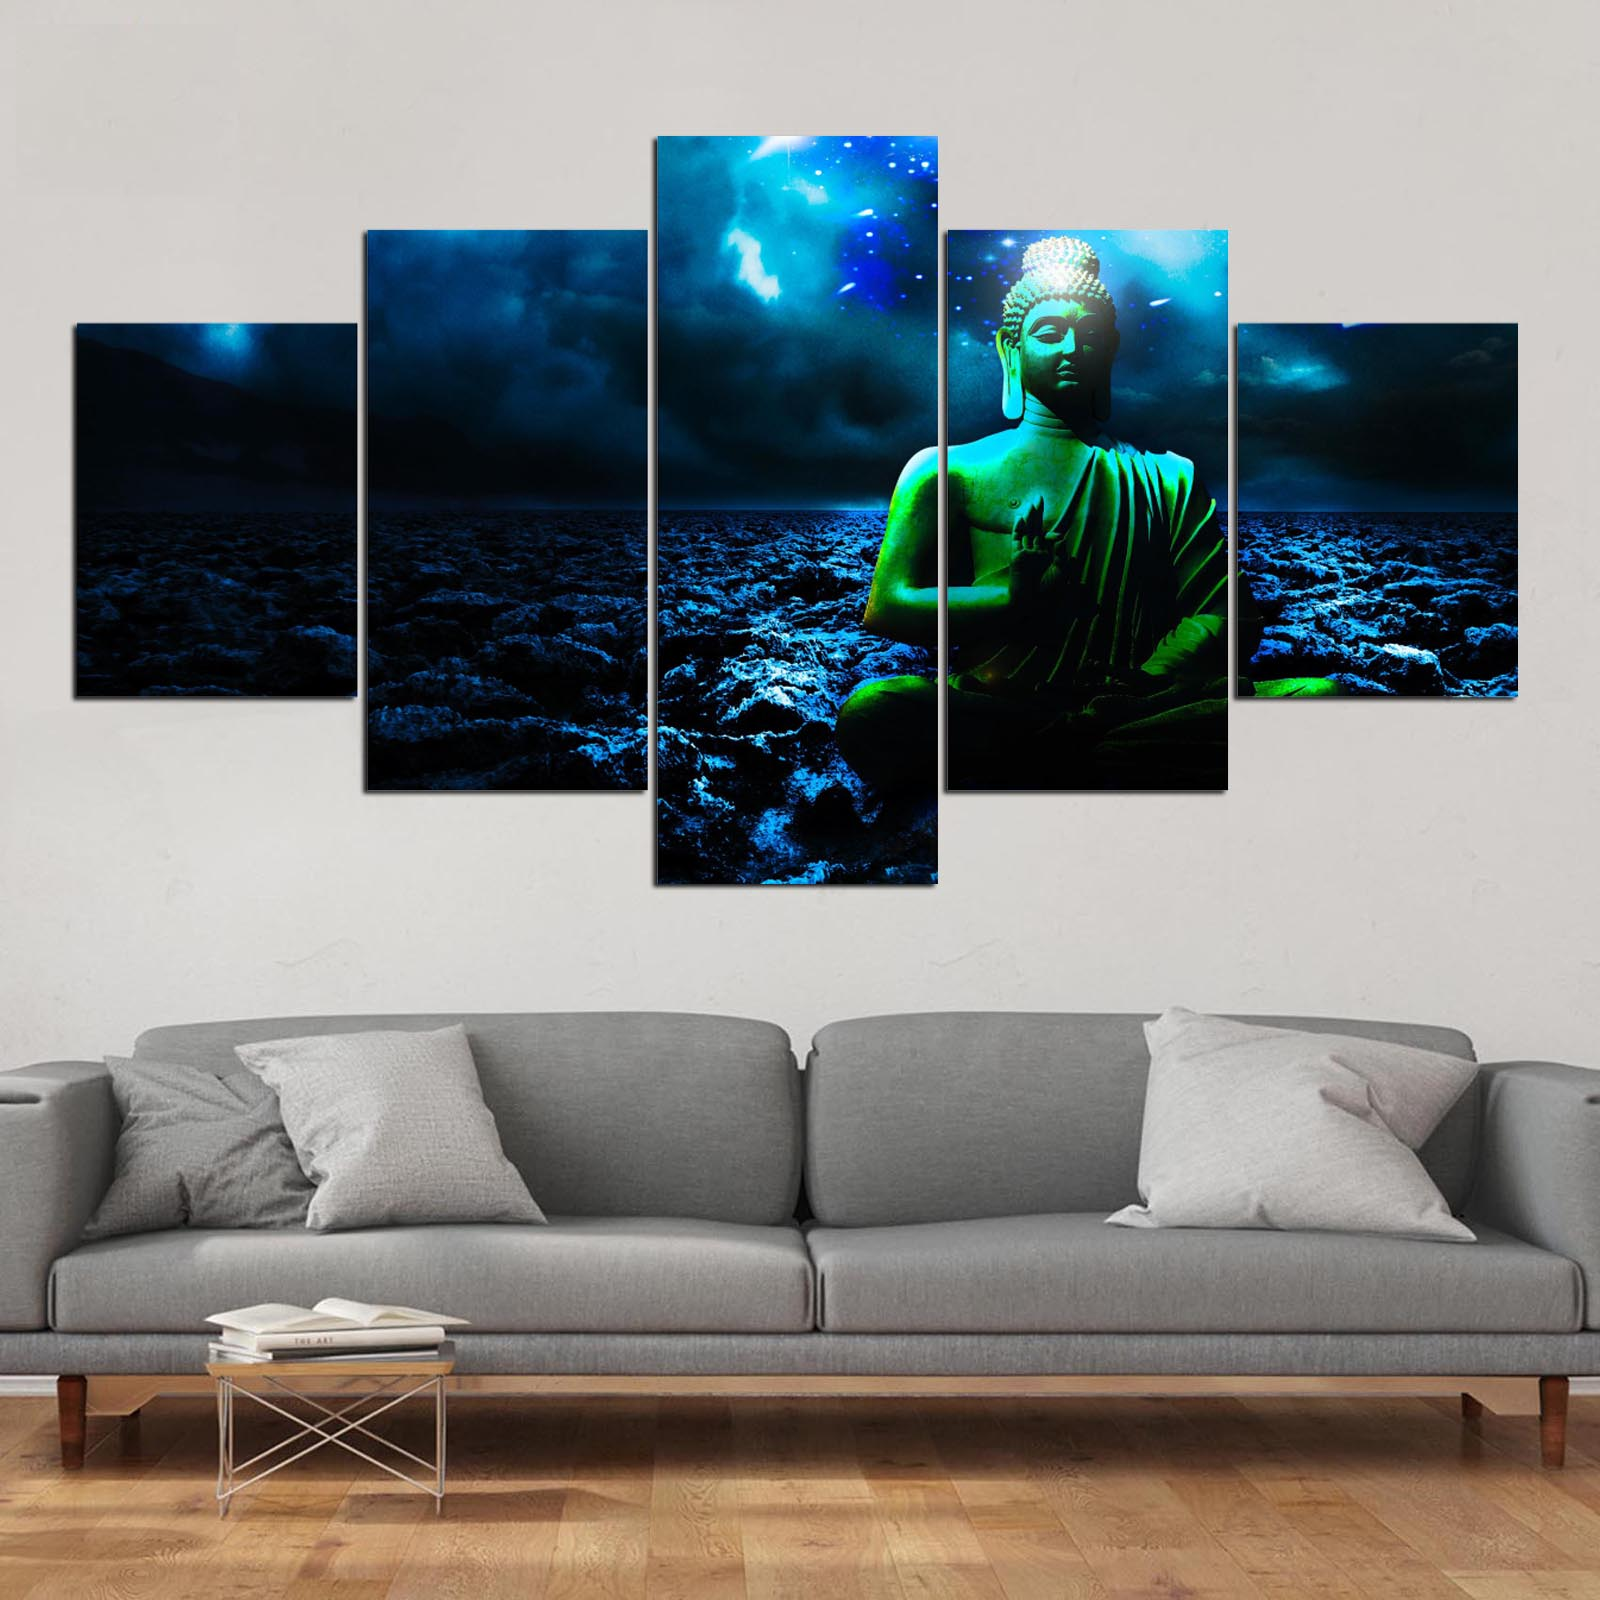 5 Pieces/set Modern Picture Printed witcher 3 wild hunt geralt of rivia painting wall art childrens room decor Unframed